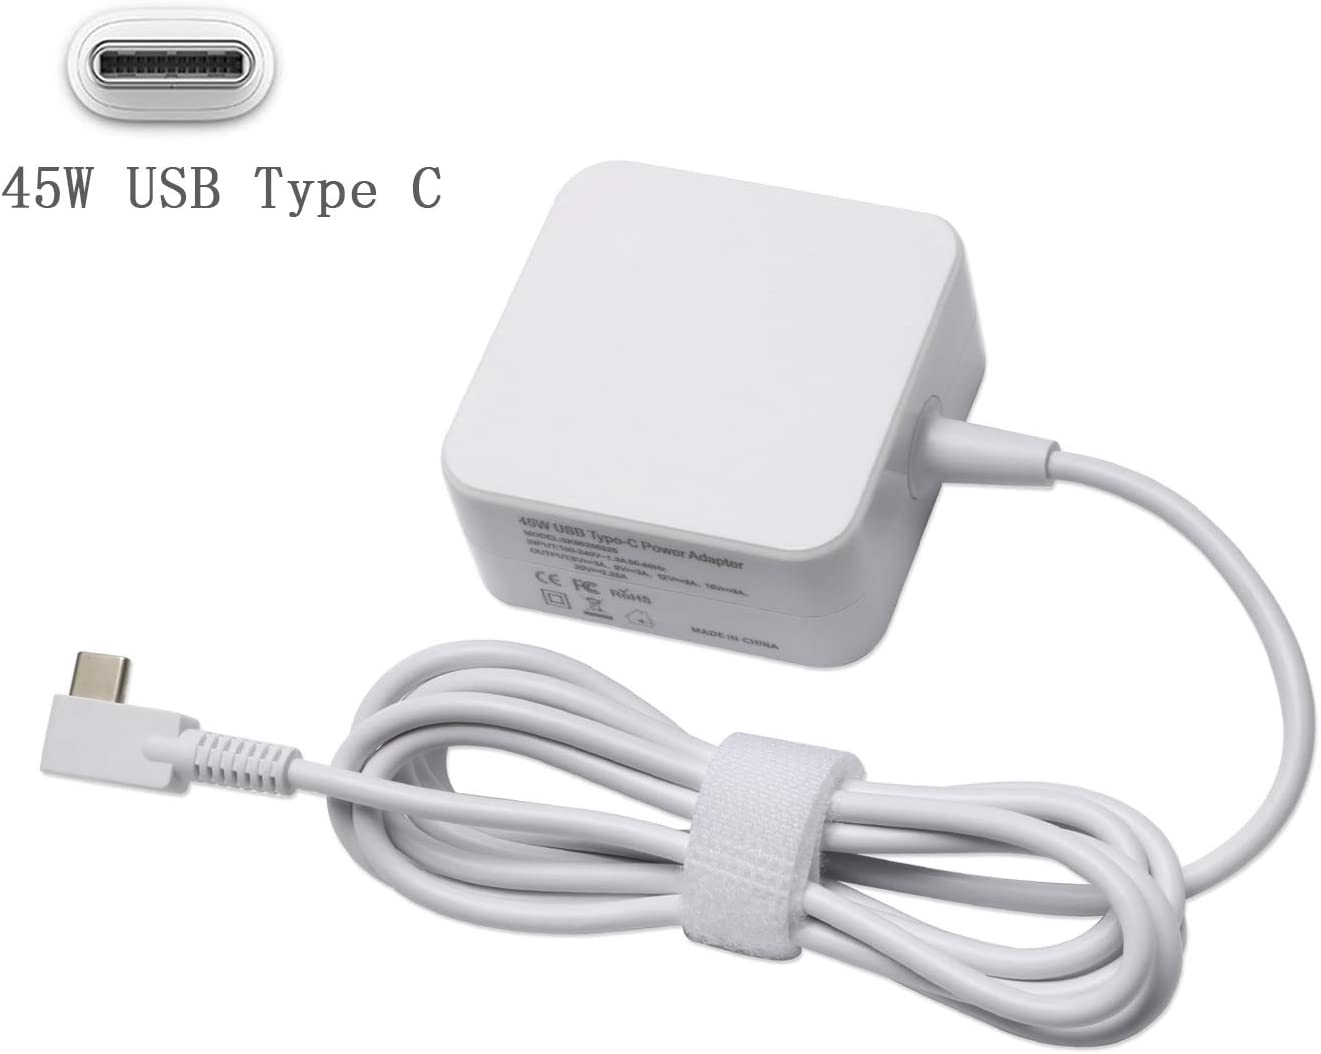 45W USB Type C AC Adapter Replacement for HP Spectre x360 13 HP Pavillion X2,Yoga 910 720 Yoga 5,Acer Travelmate B1,ASUS ZenBook 3 UX390 90,Lenovo Tablet,Google Pixel 3,MacBook Prowith USB C Chargeing